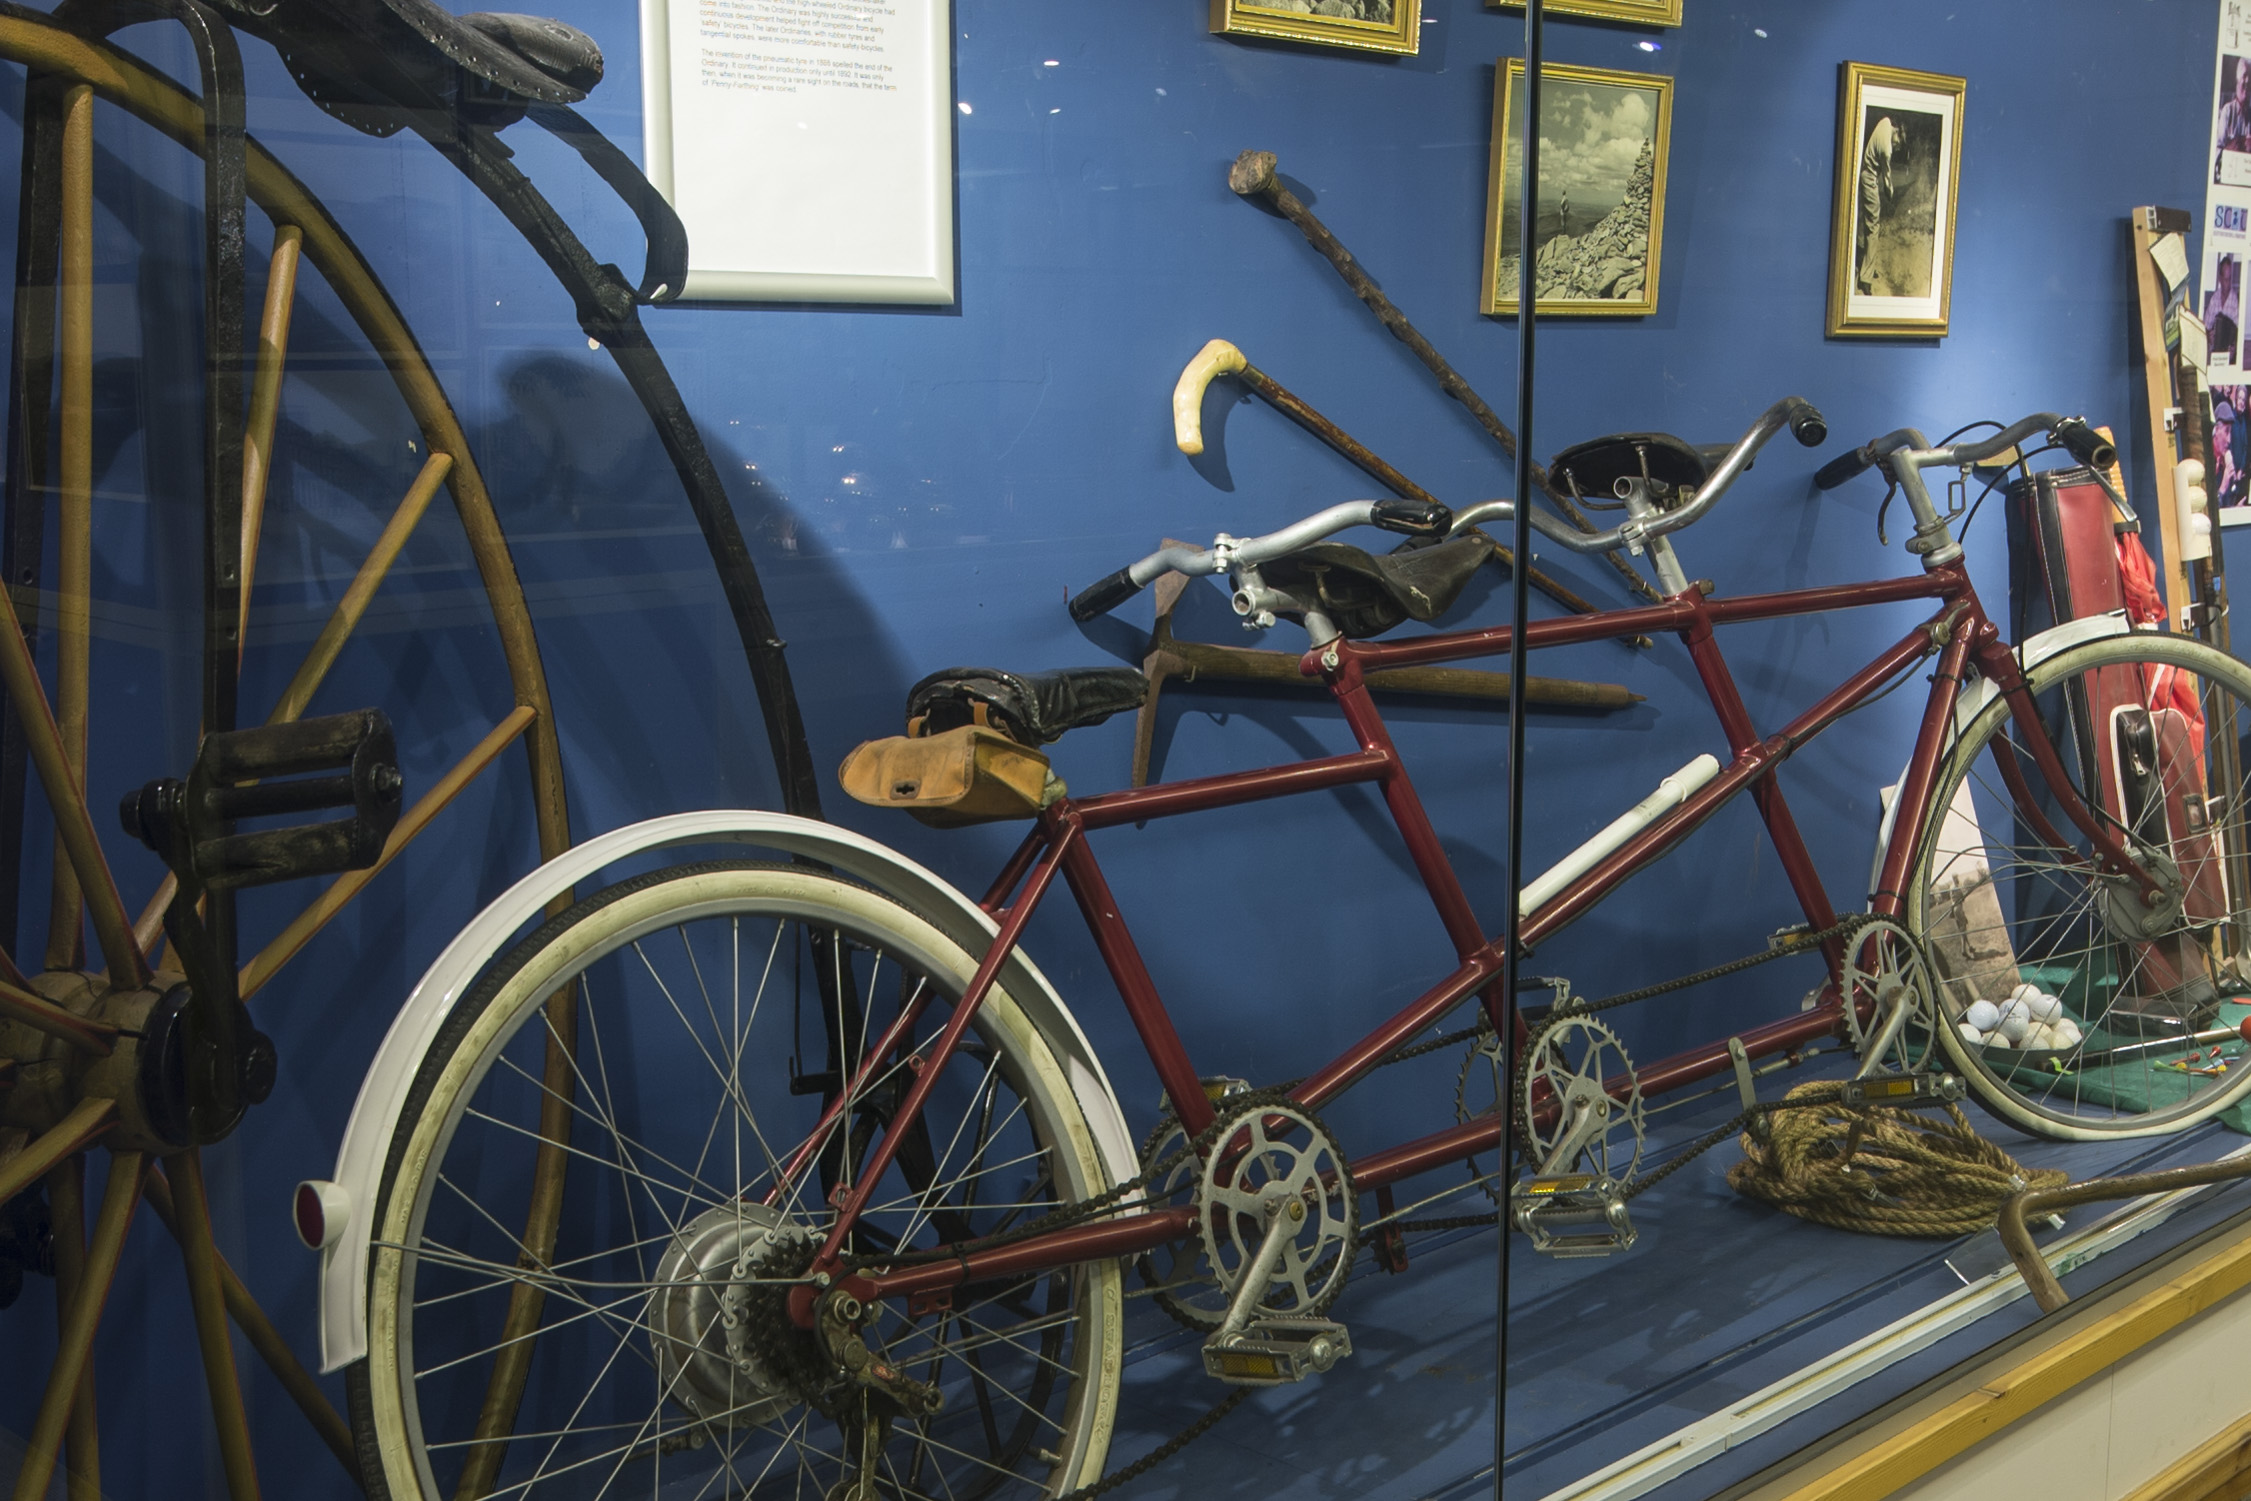 Display of bicycles